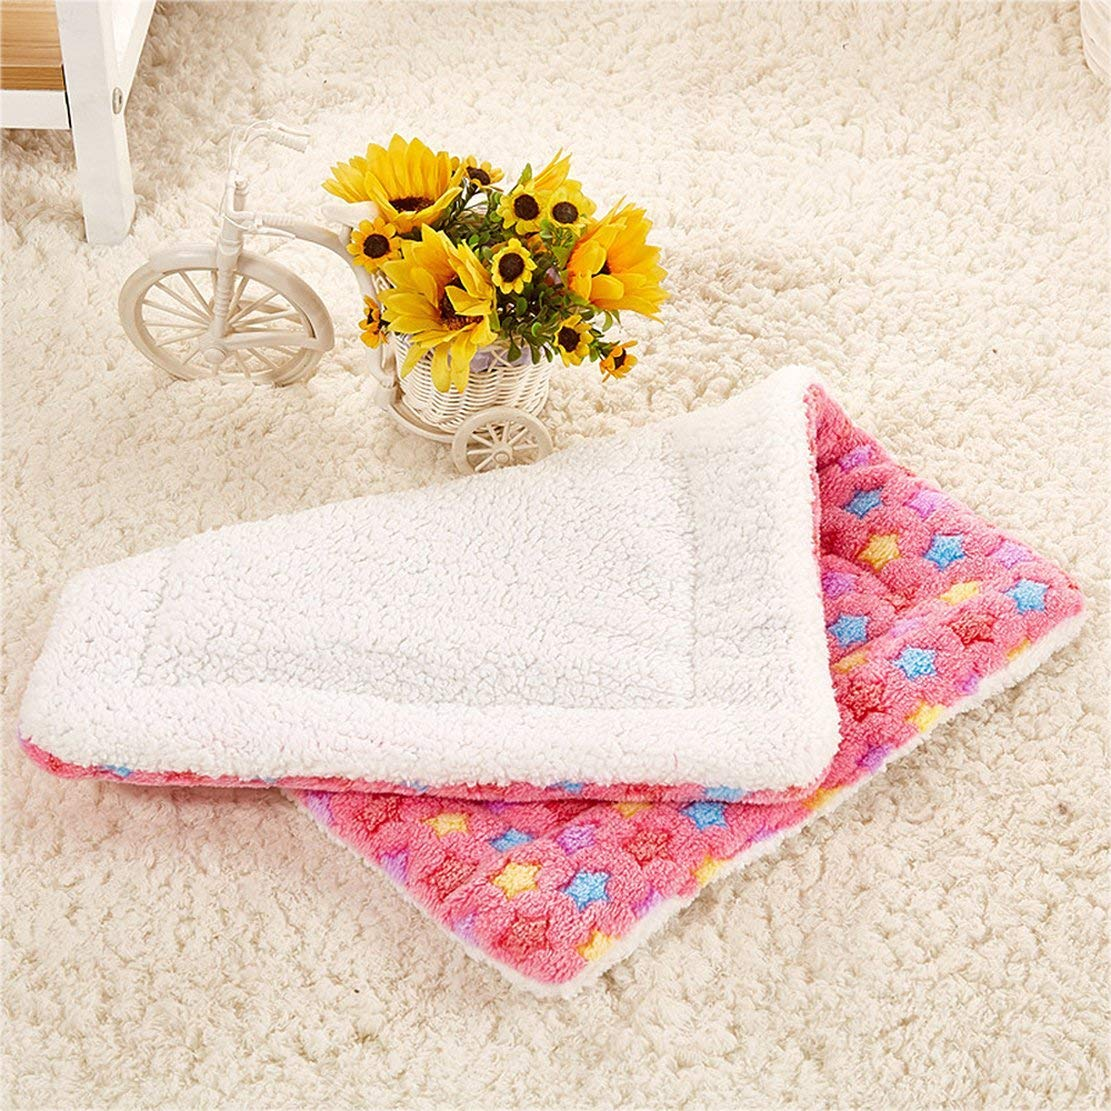 B/&C.ROOM Pet Cushion Soft Dog Cushion Sleeper Mat Cat Animal Soft and Warm Bed